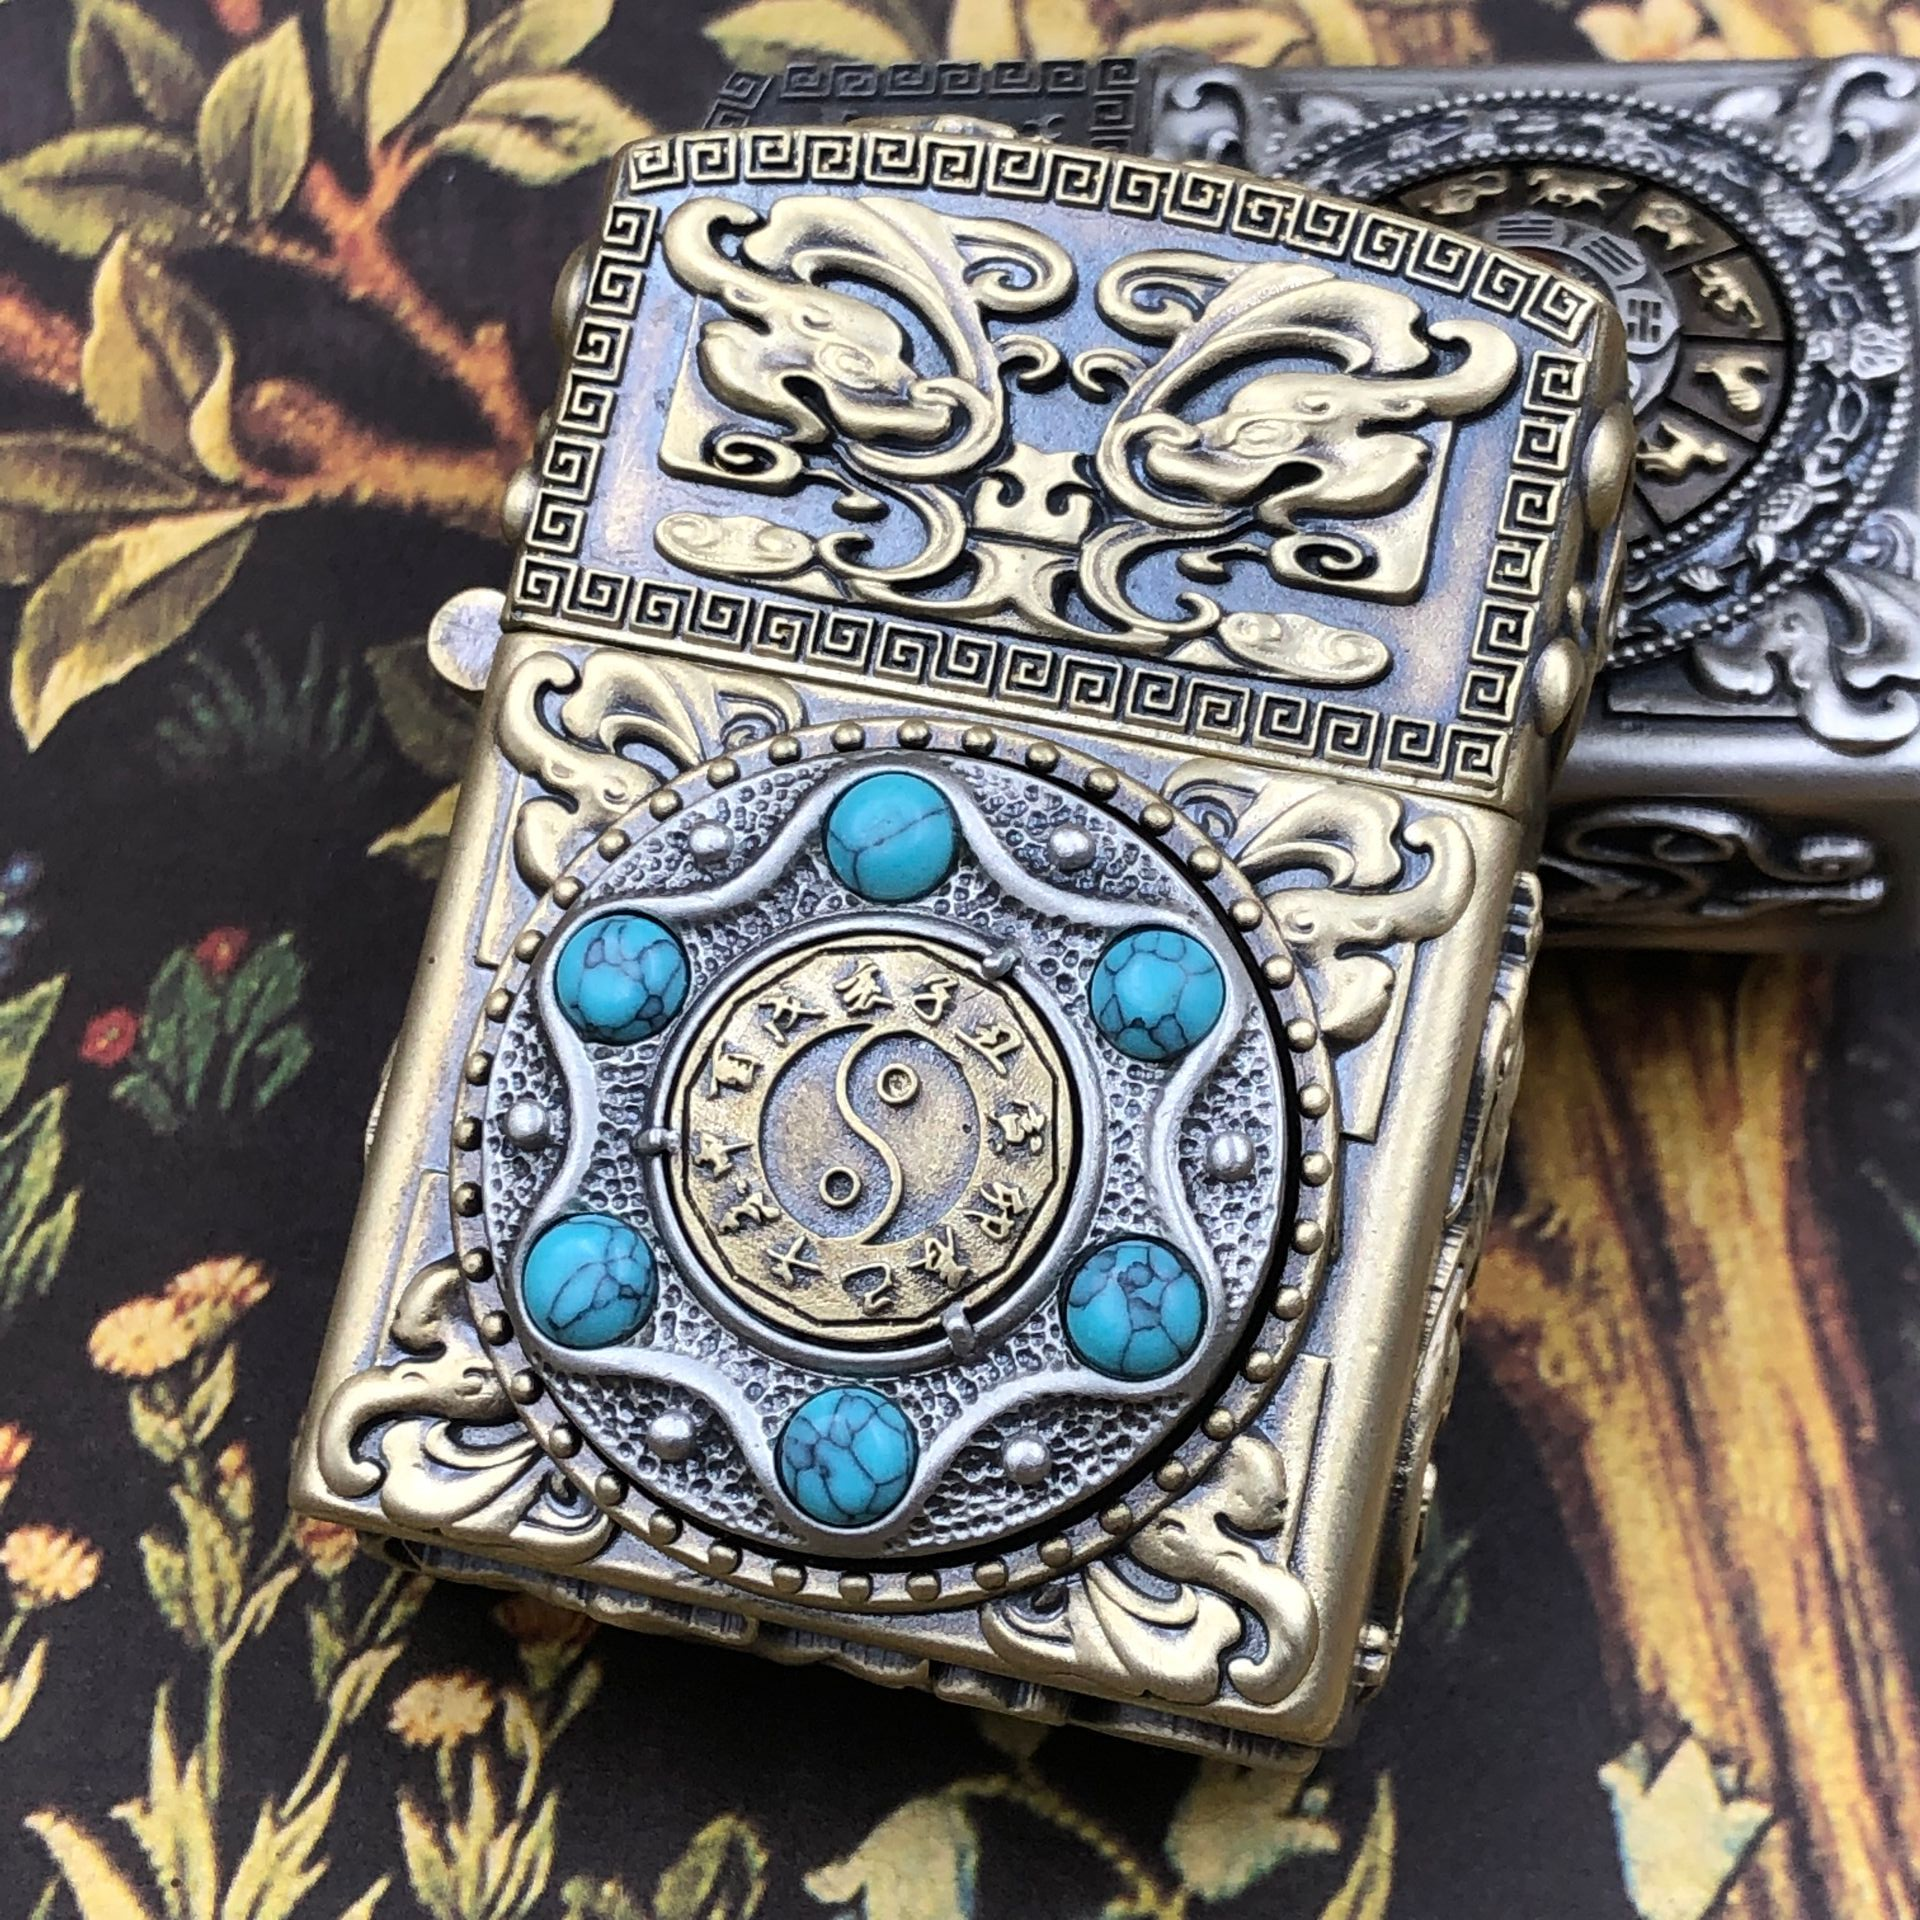 Vintage brass petrol lighter Chinese classical style good luck 2 sided pattern rotating cigarette gasoline lighter